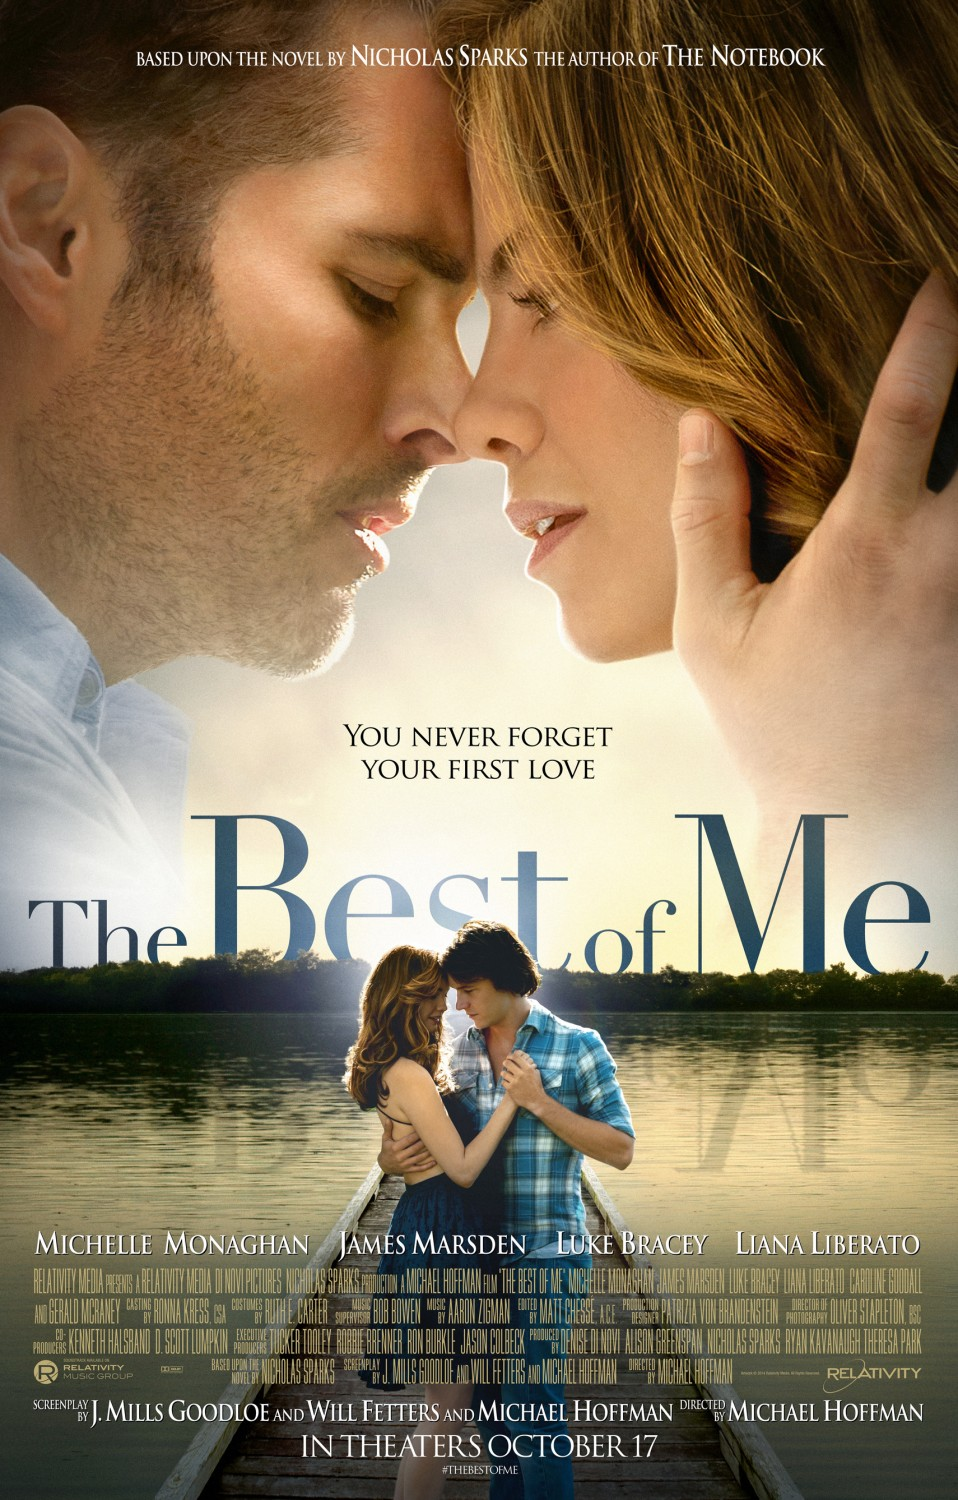 review best of me decent story of reuniting love but not best of me poster